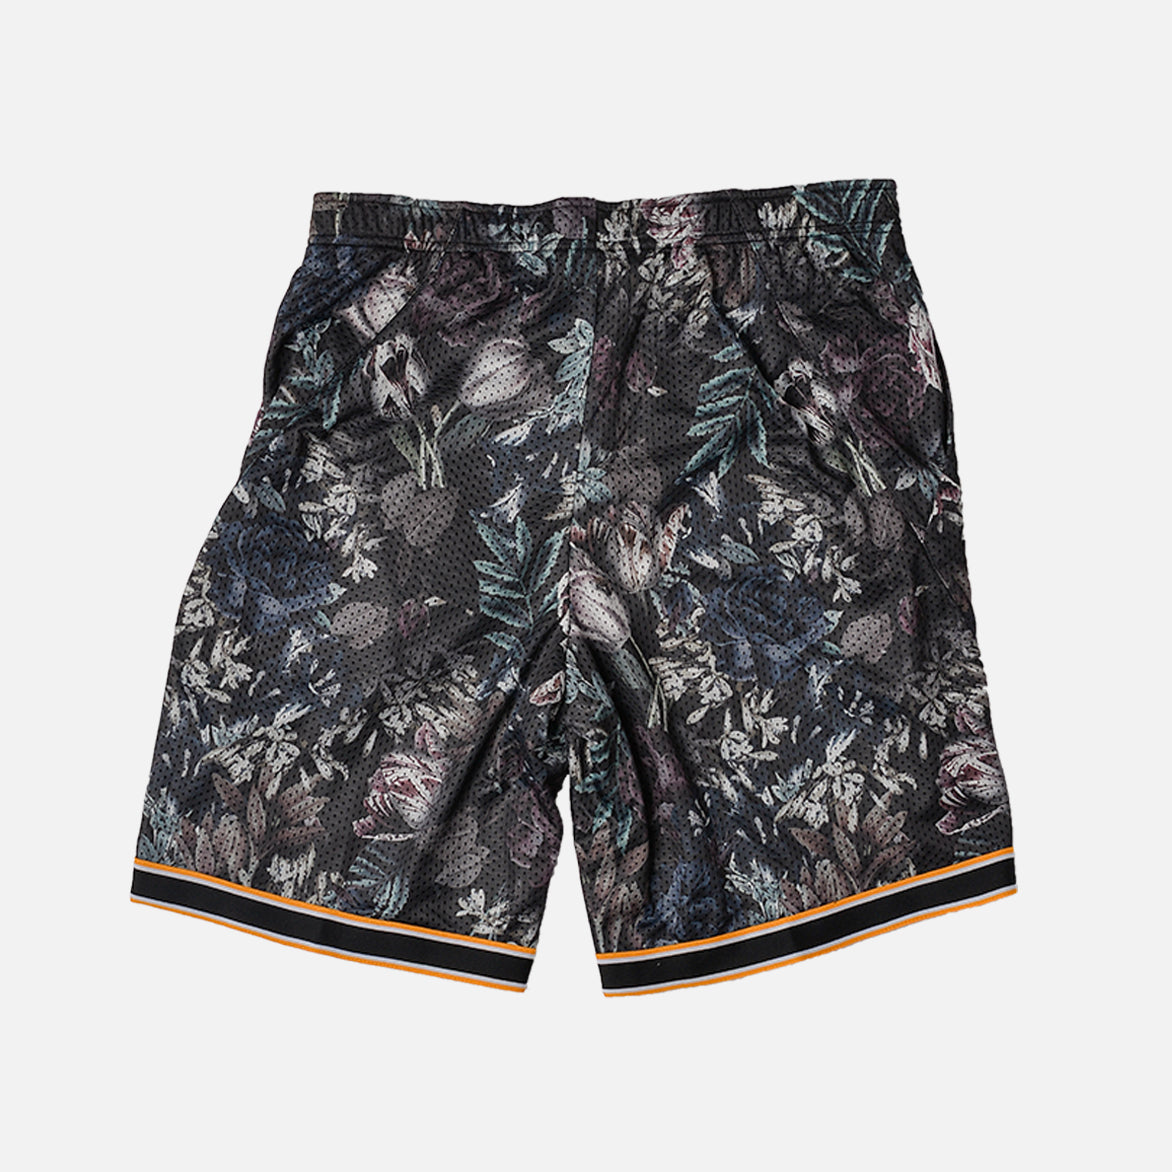 NIKECOURT FLEX ACE SHORT - BLACK / CANYON GOLD / FLORAL